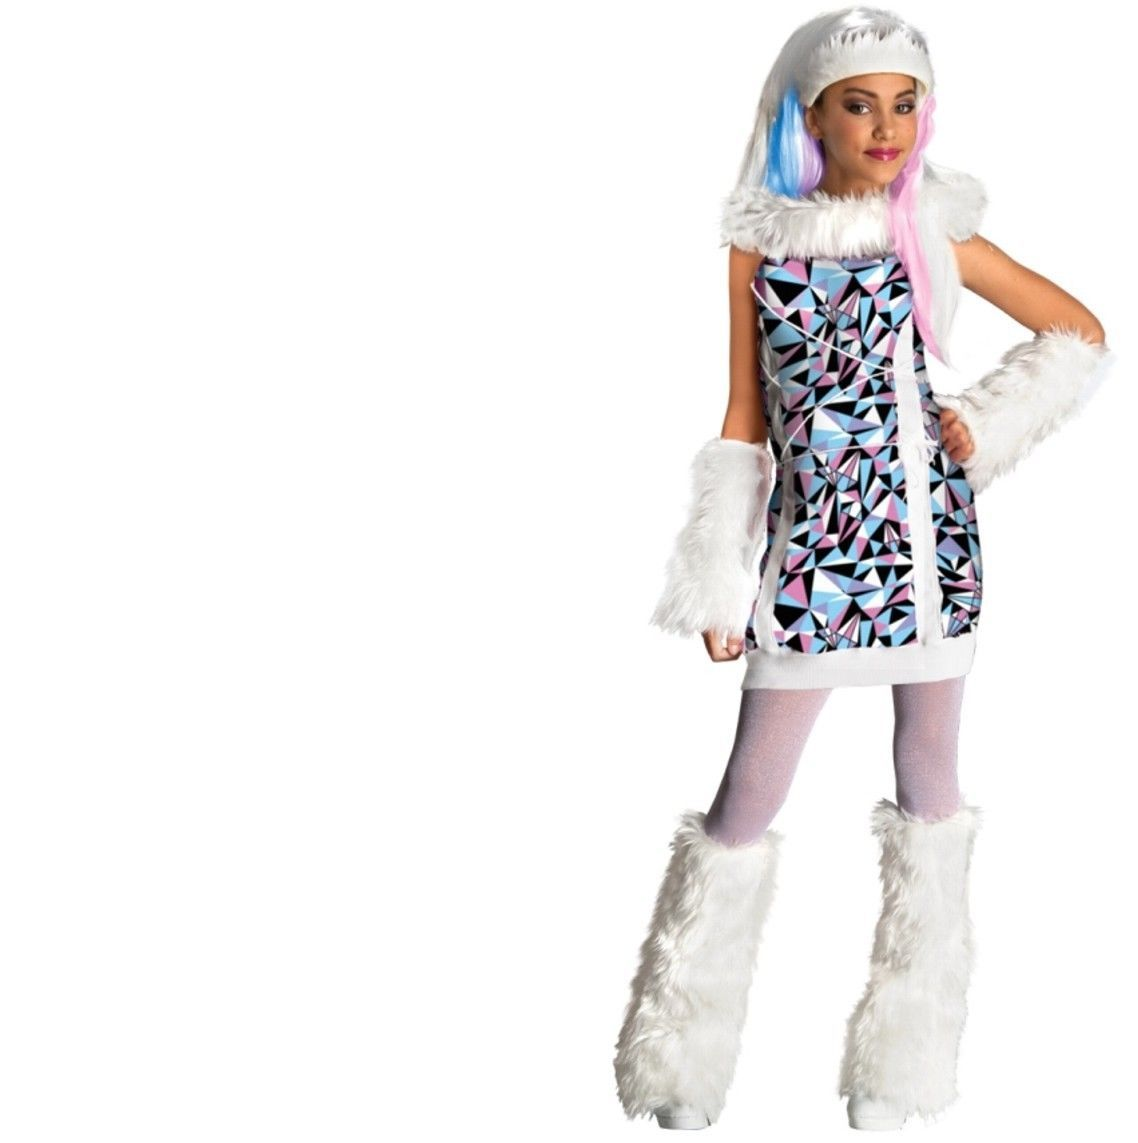 Monster High - Set - Costume + Wig - Abbey Bominable - Child - Medium